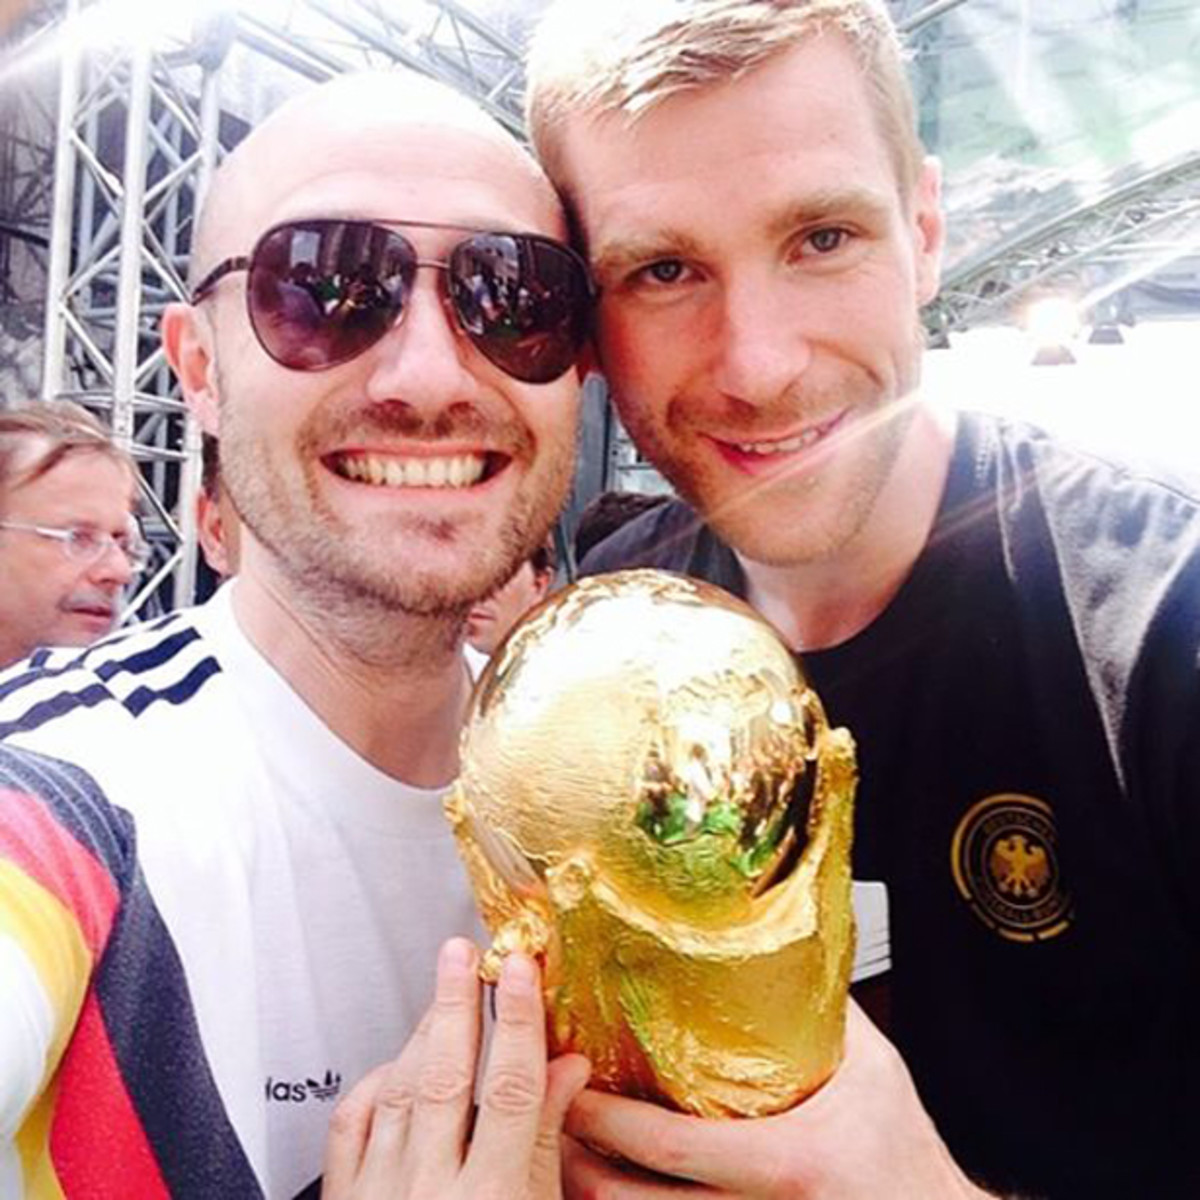 Paul Kalkbrenner Is The 1st DJ To Hold The World Cup In Berlin